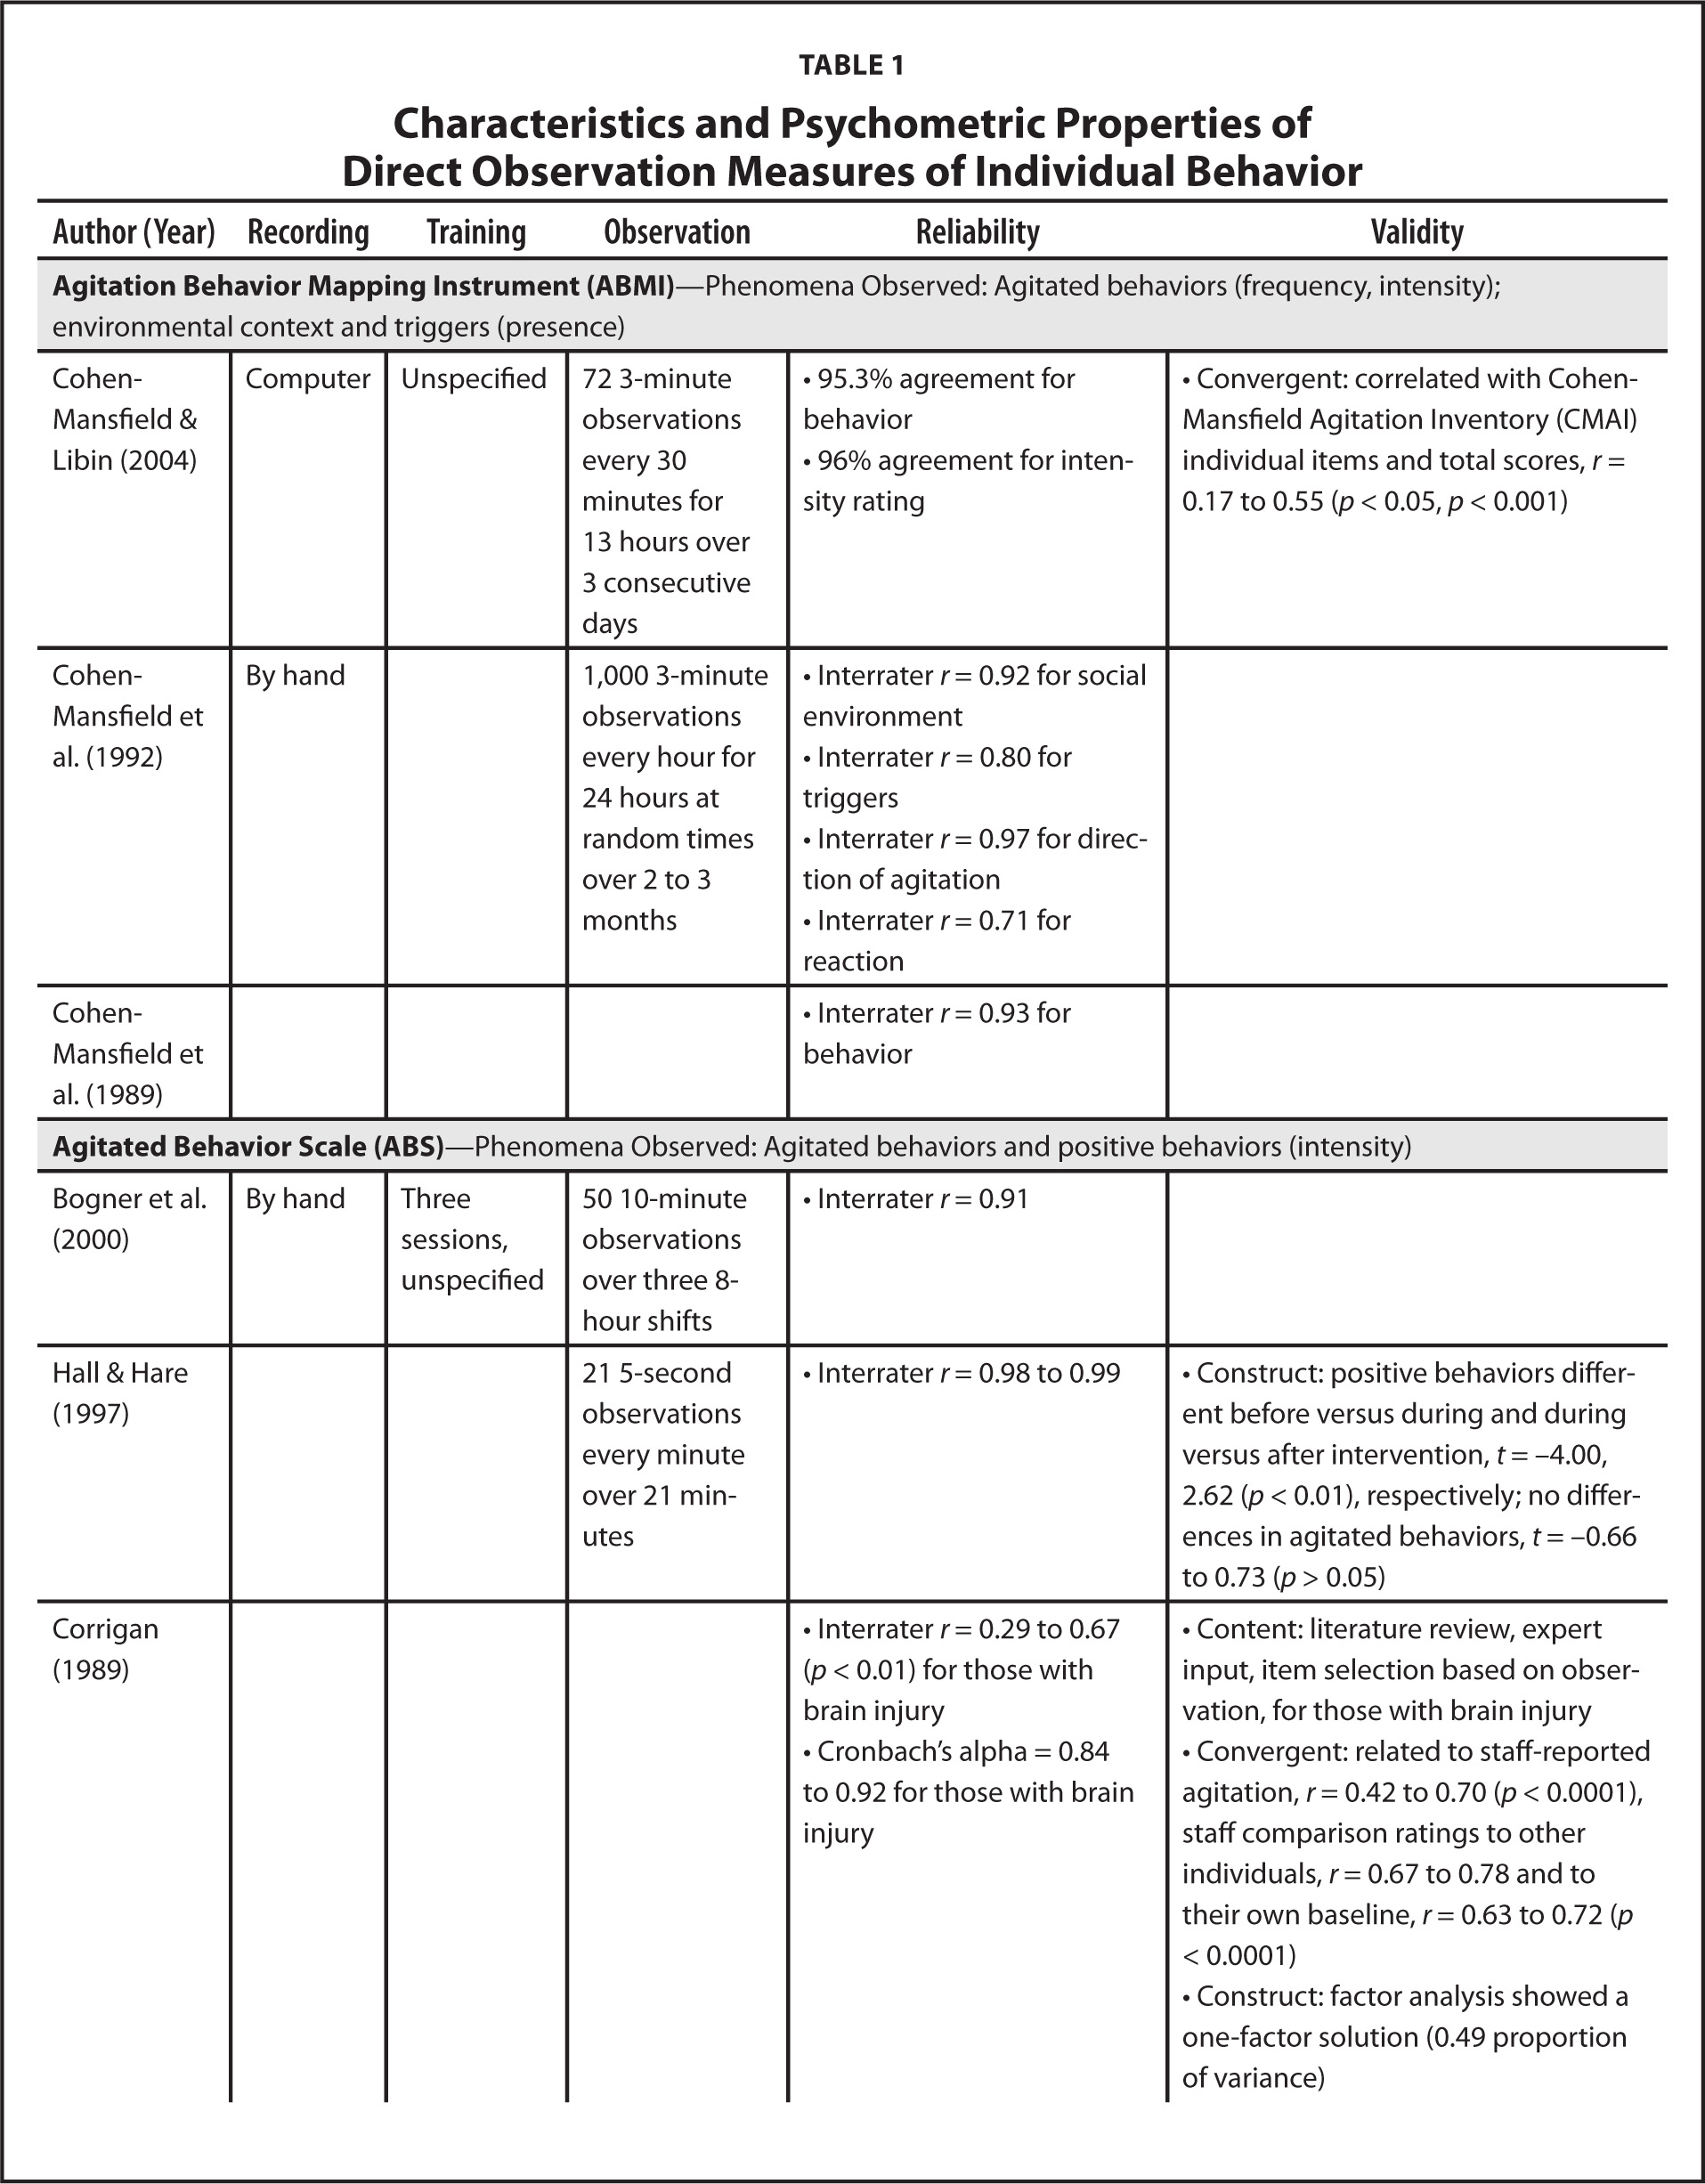 Direct Observation Of Behavior A Review Of Current Measures For Use With Older Adults With Dementia